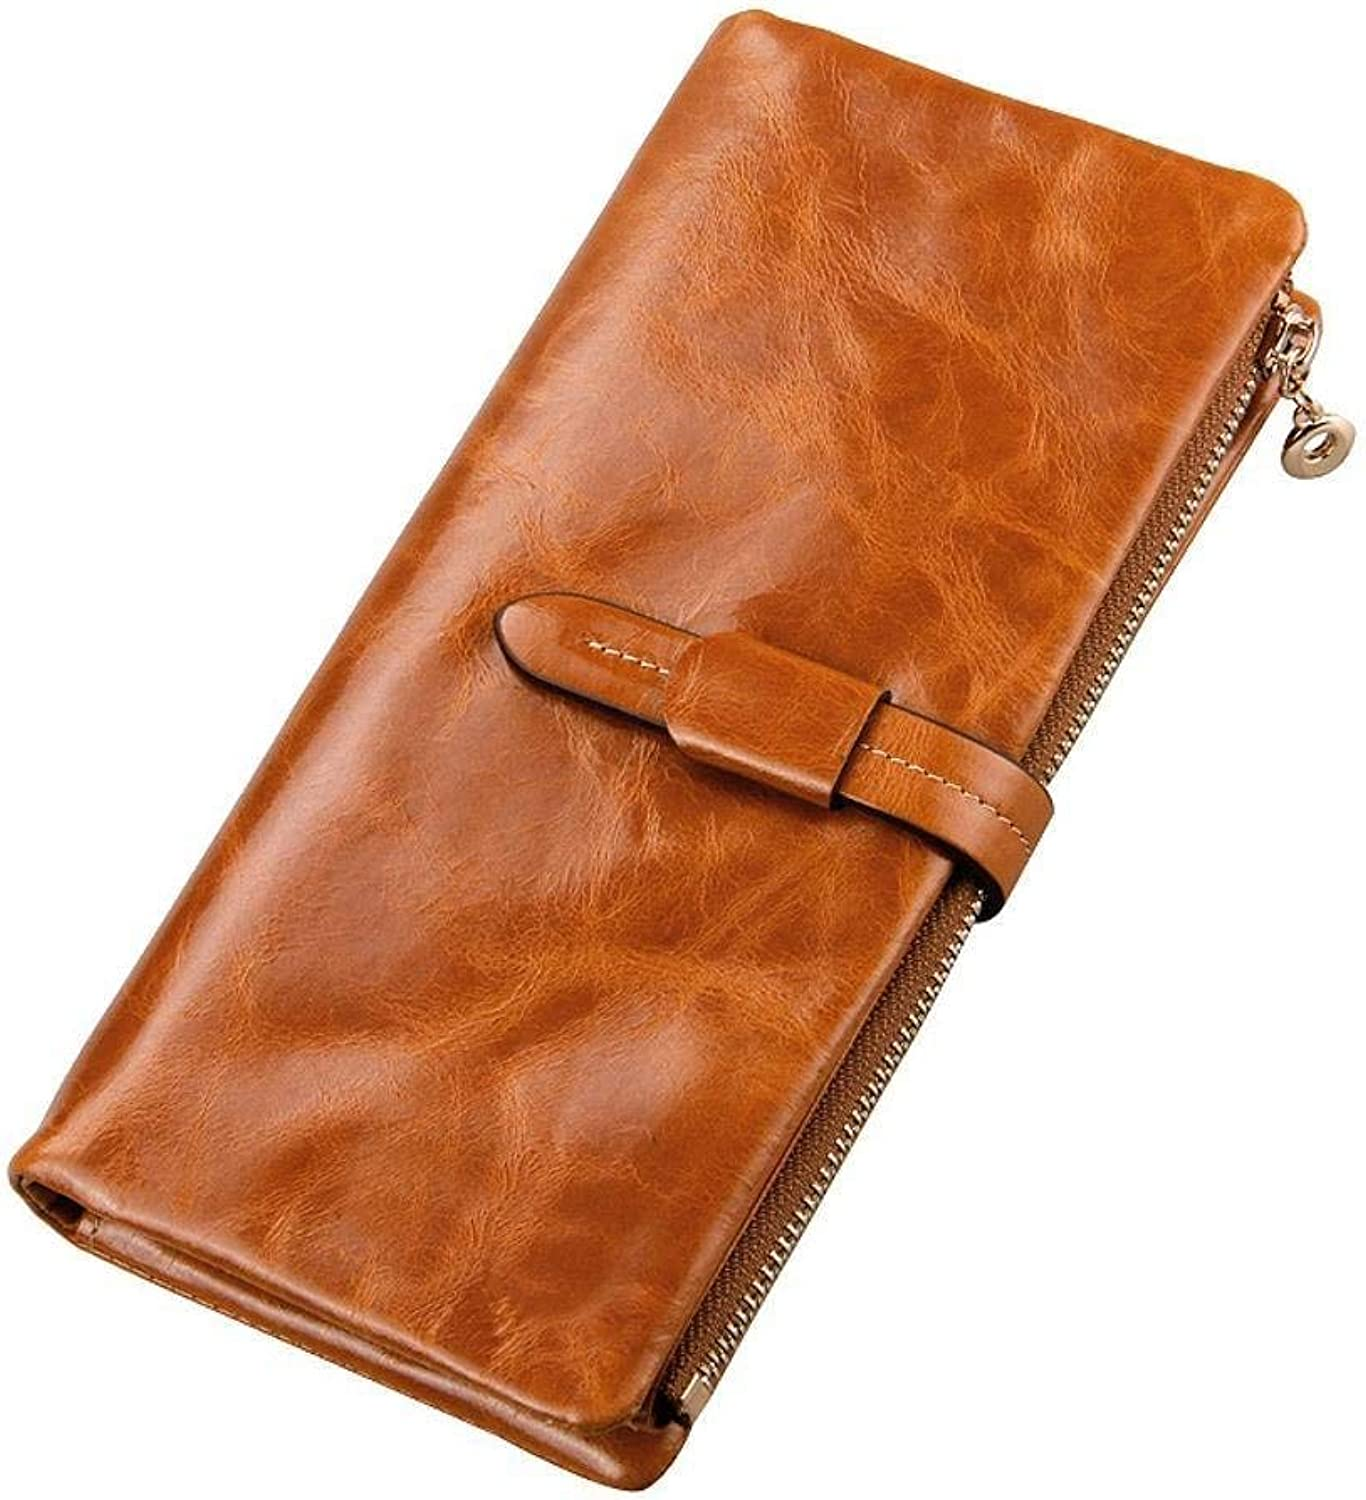 Cross Oil Wax Leather Lady Purse Fashion Belt Female Wallet Leather Hand Bag 18.5cmx9.3cmx2cm for Work (color   Brown)